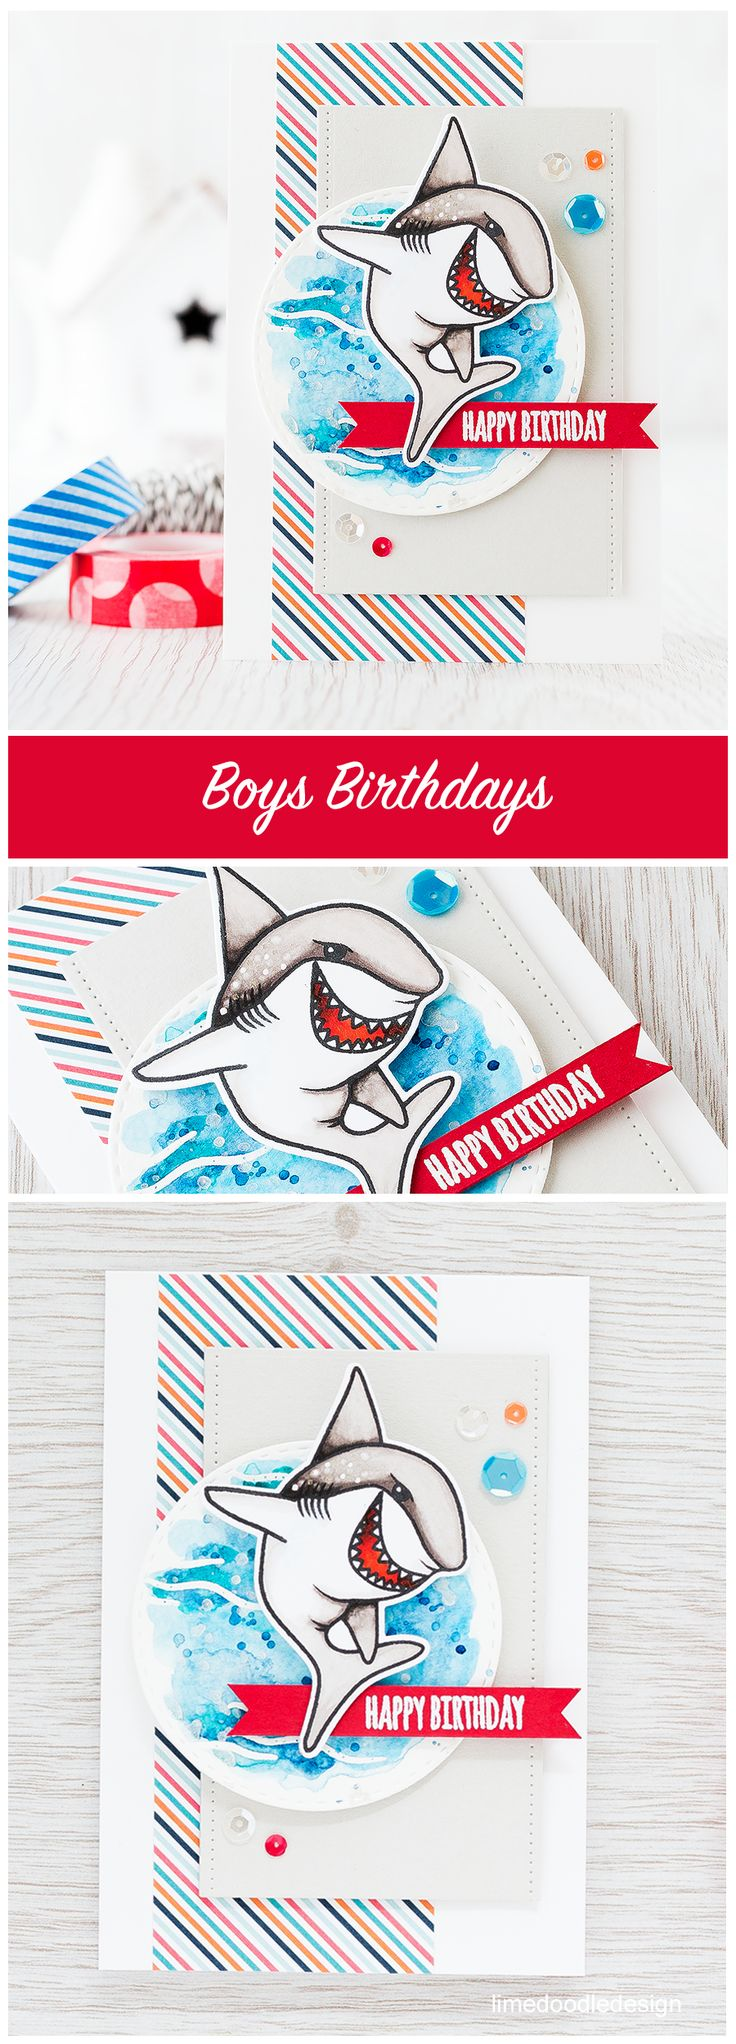 Design muse shark week - Sharks Are A Great Option For Boys Birthdays And Girls Of Course Lol Find